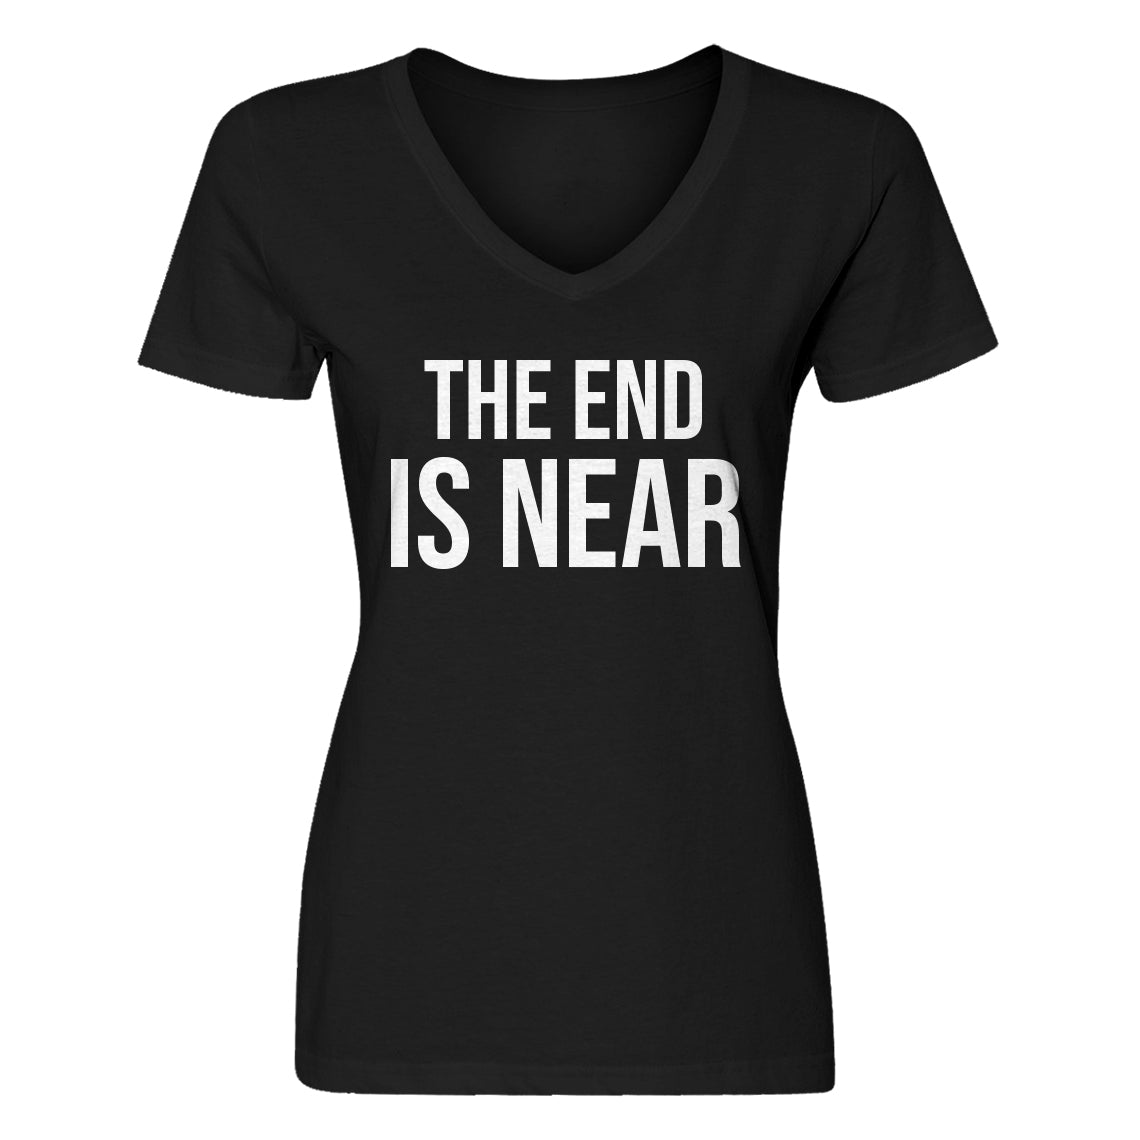 Womens The End is Near V-Neck T-shirt